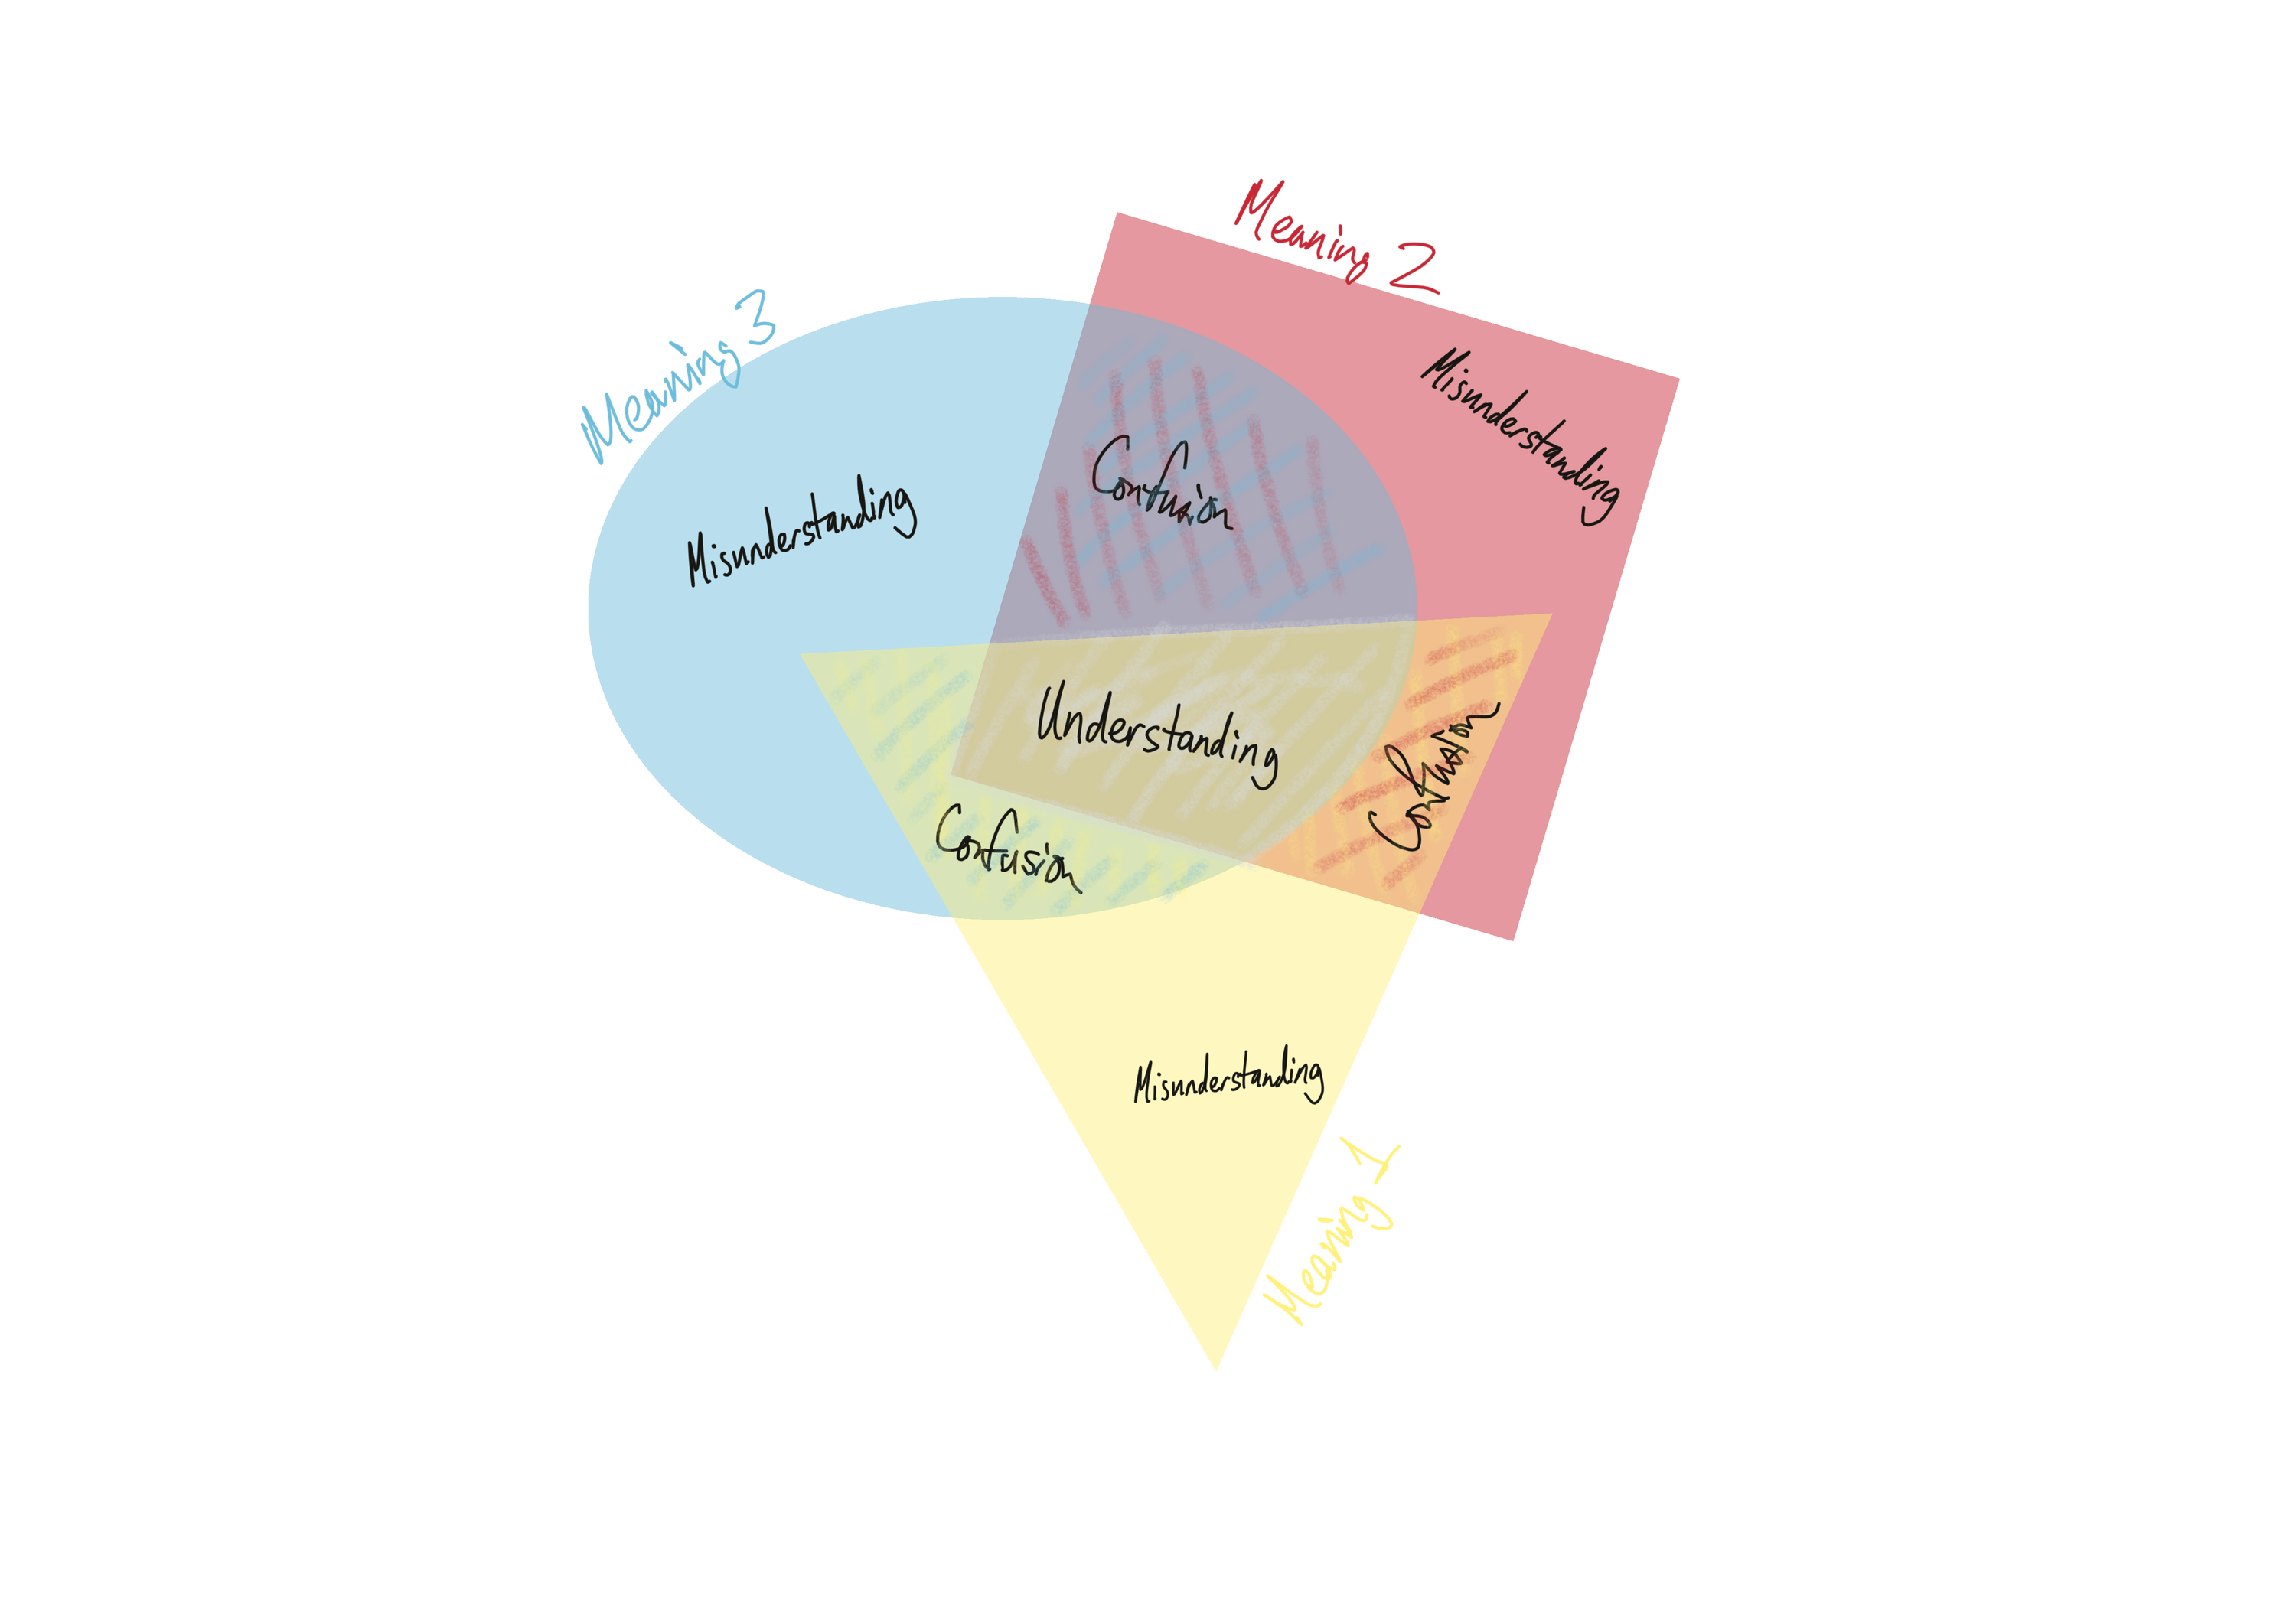 Buzzword meaning space. The three colored shapes are three different meanings attached to the same buzzword.